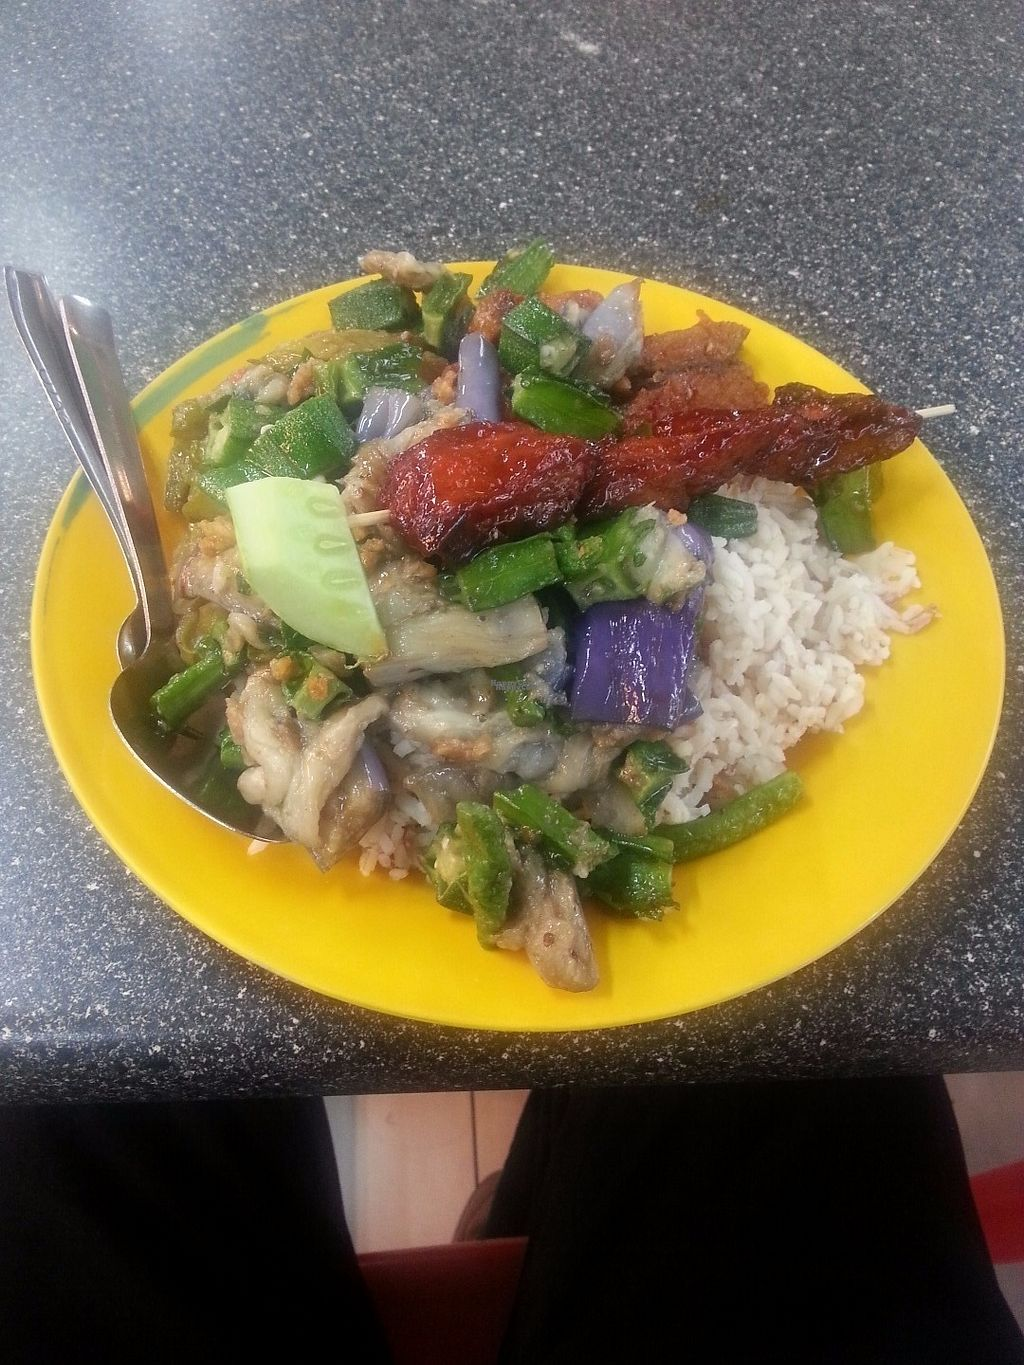 """Photo of Le Tian Vegetarian Stall  by <a href=""""/members/profile/Satrai"""">Satrai</a> <br/>Le Tian <br/> September 1, 2016  - <a href='/contact/abuse/image/17293/172918'>Report</a>"""